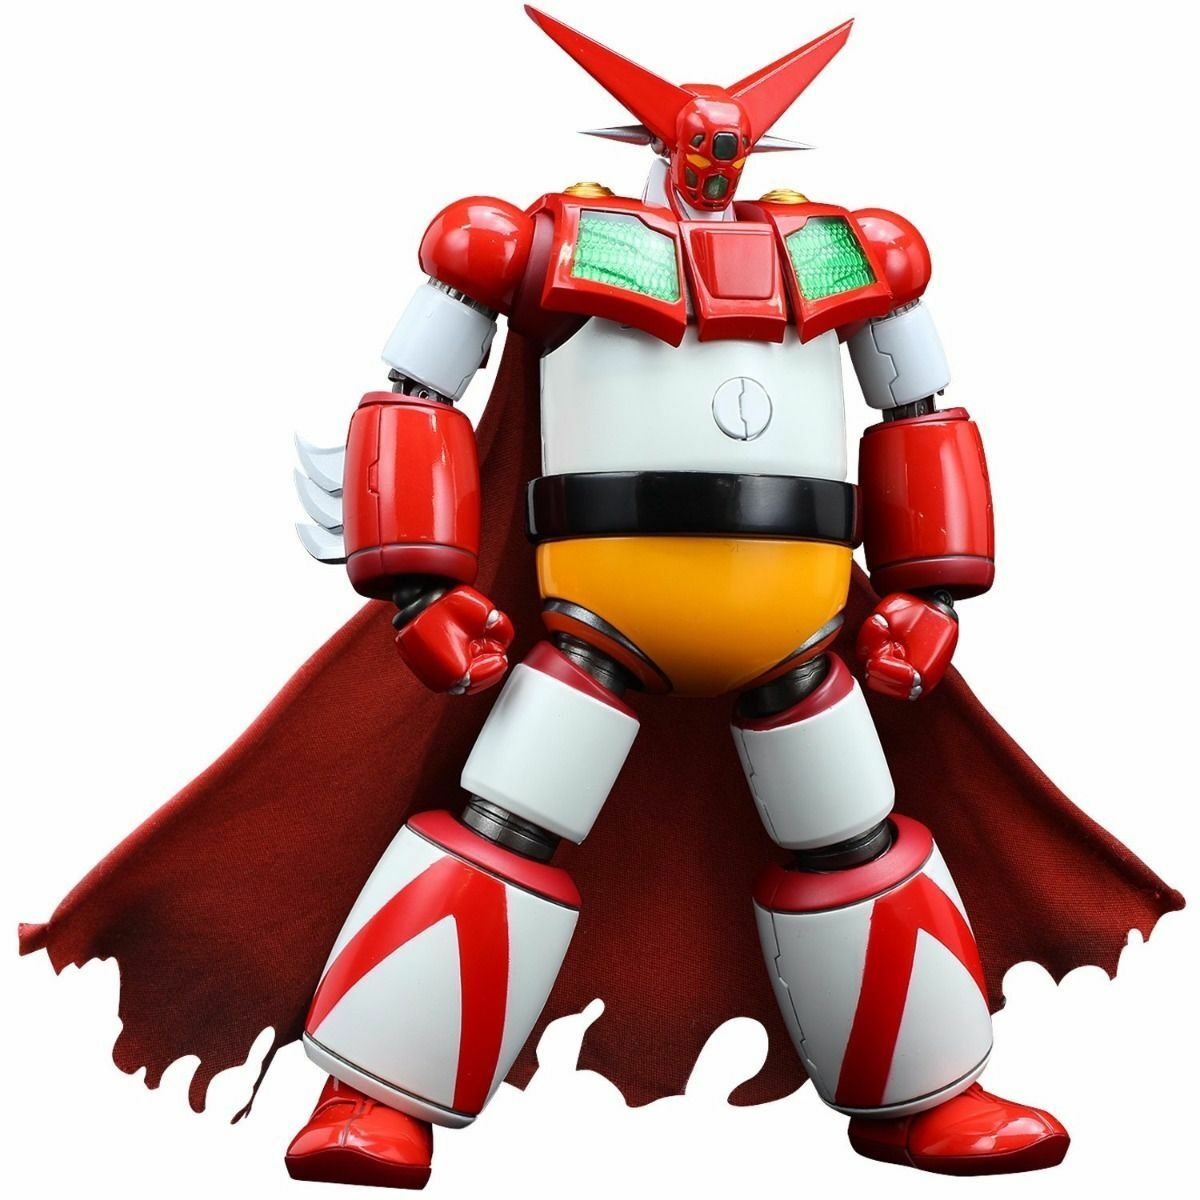 Sentinel x  T-REX Getter Robo GETTER 1 Action Figure nouveau from Japan  les promotions